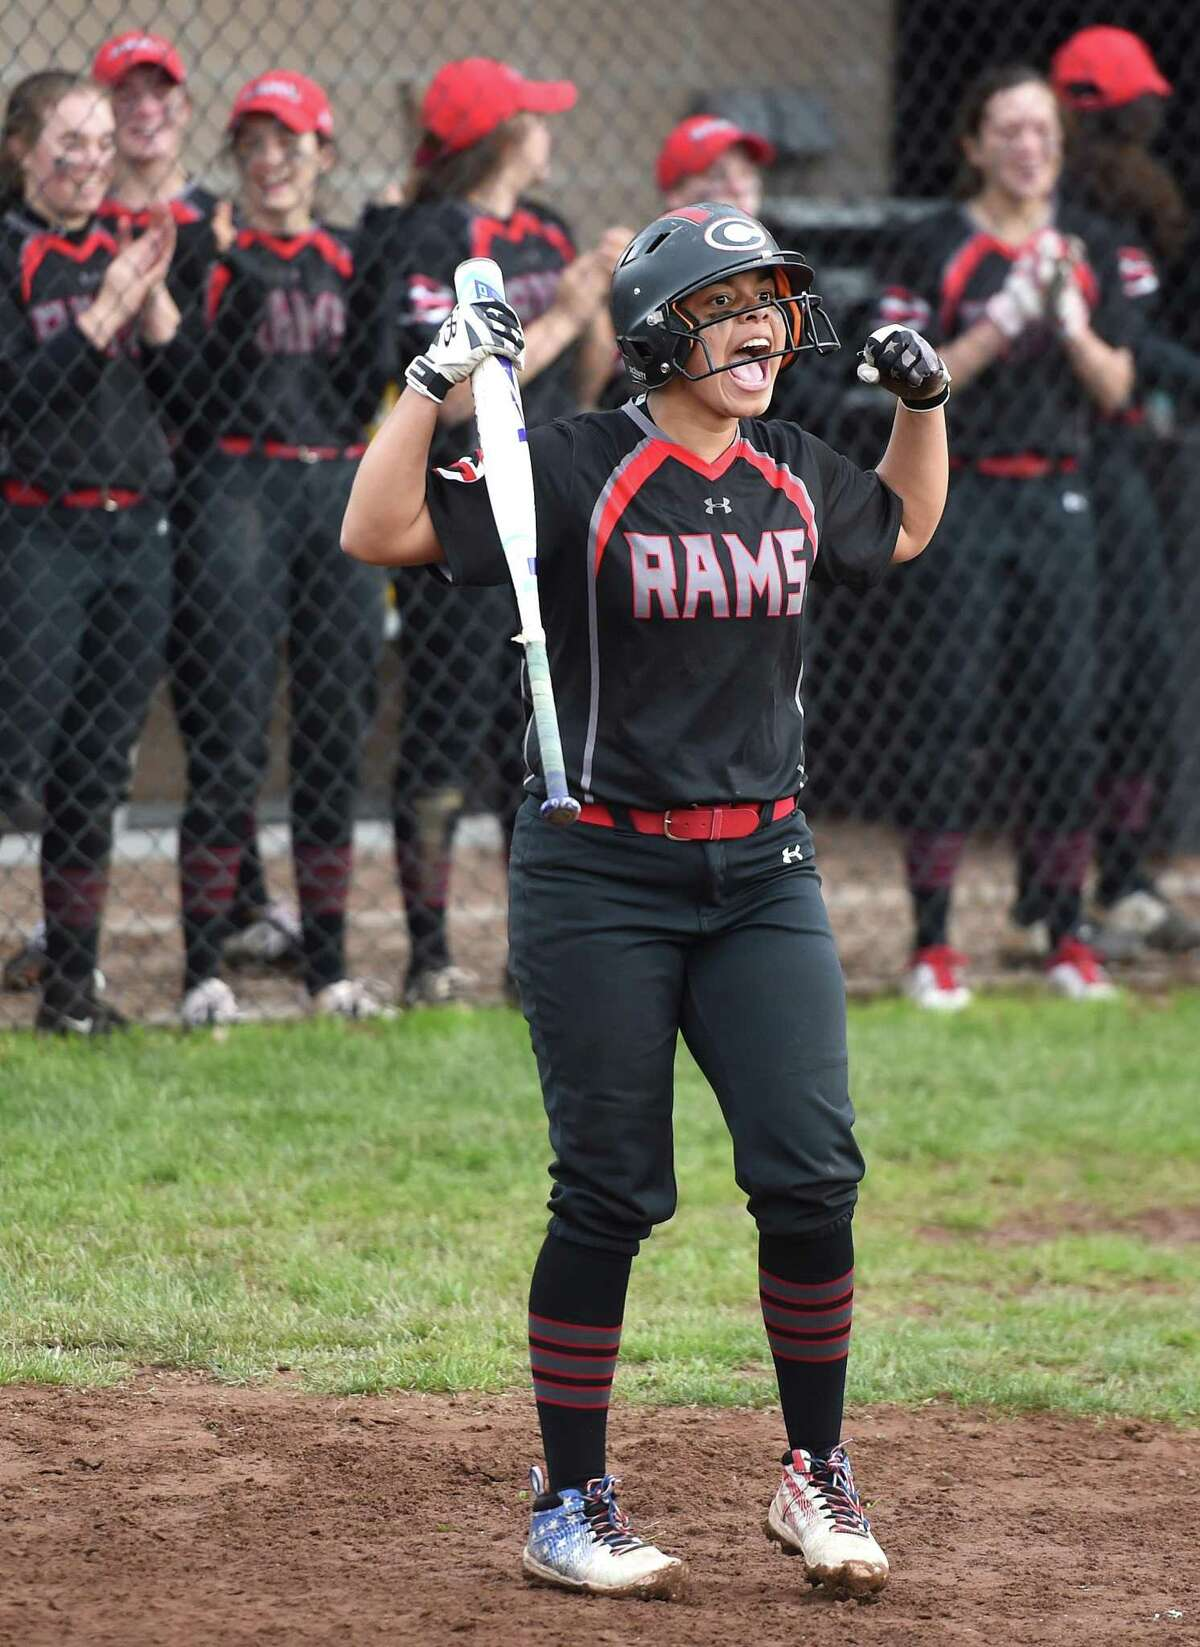 Cheshire's Jade Barnes celebrates as she comes to bat against Southington after Cheshire scored two runs in the seventh inning to tie the game at 3 on Tuesday.